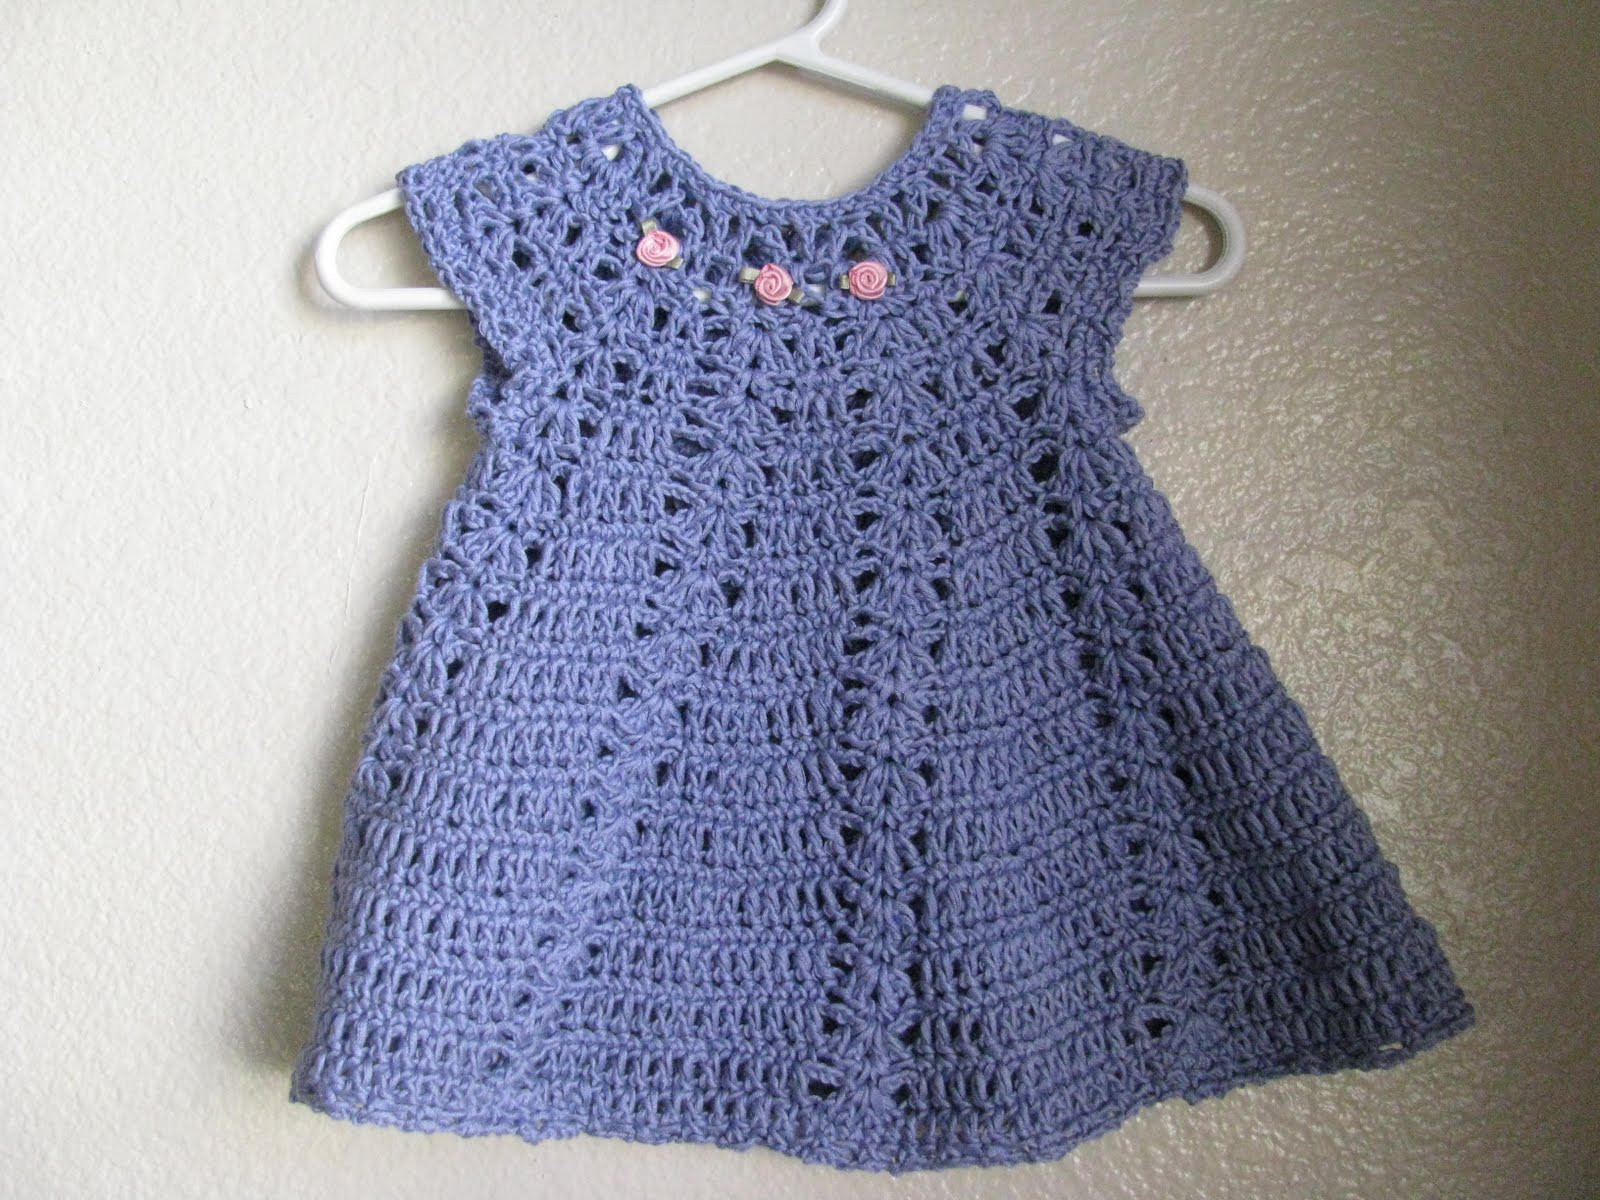 My latest project My first crocheted baby dress finished